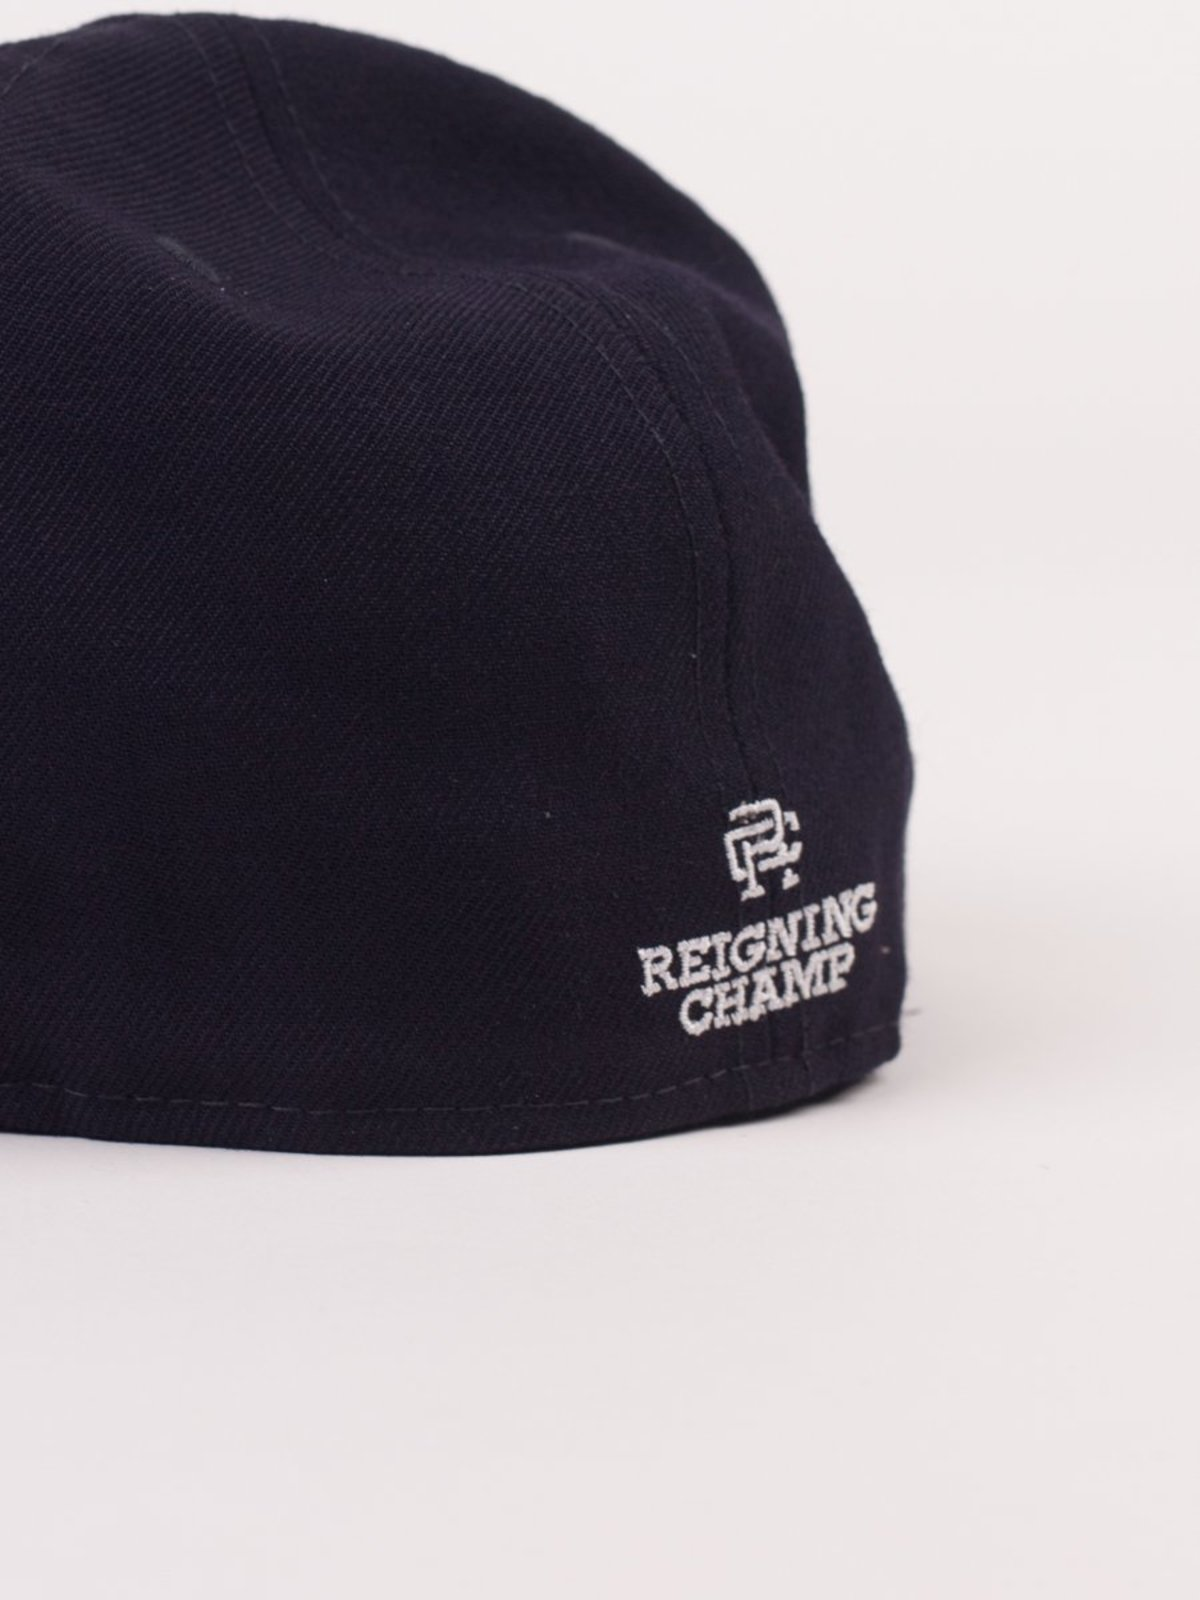 2eb79d8e213 ... Reigning-Champ-New-Era-Fitted-Hat  best cheap Shop Reigning Champ 603a2  c4d52 ...